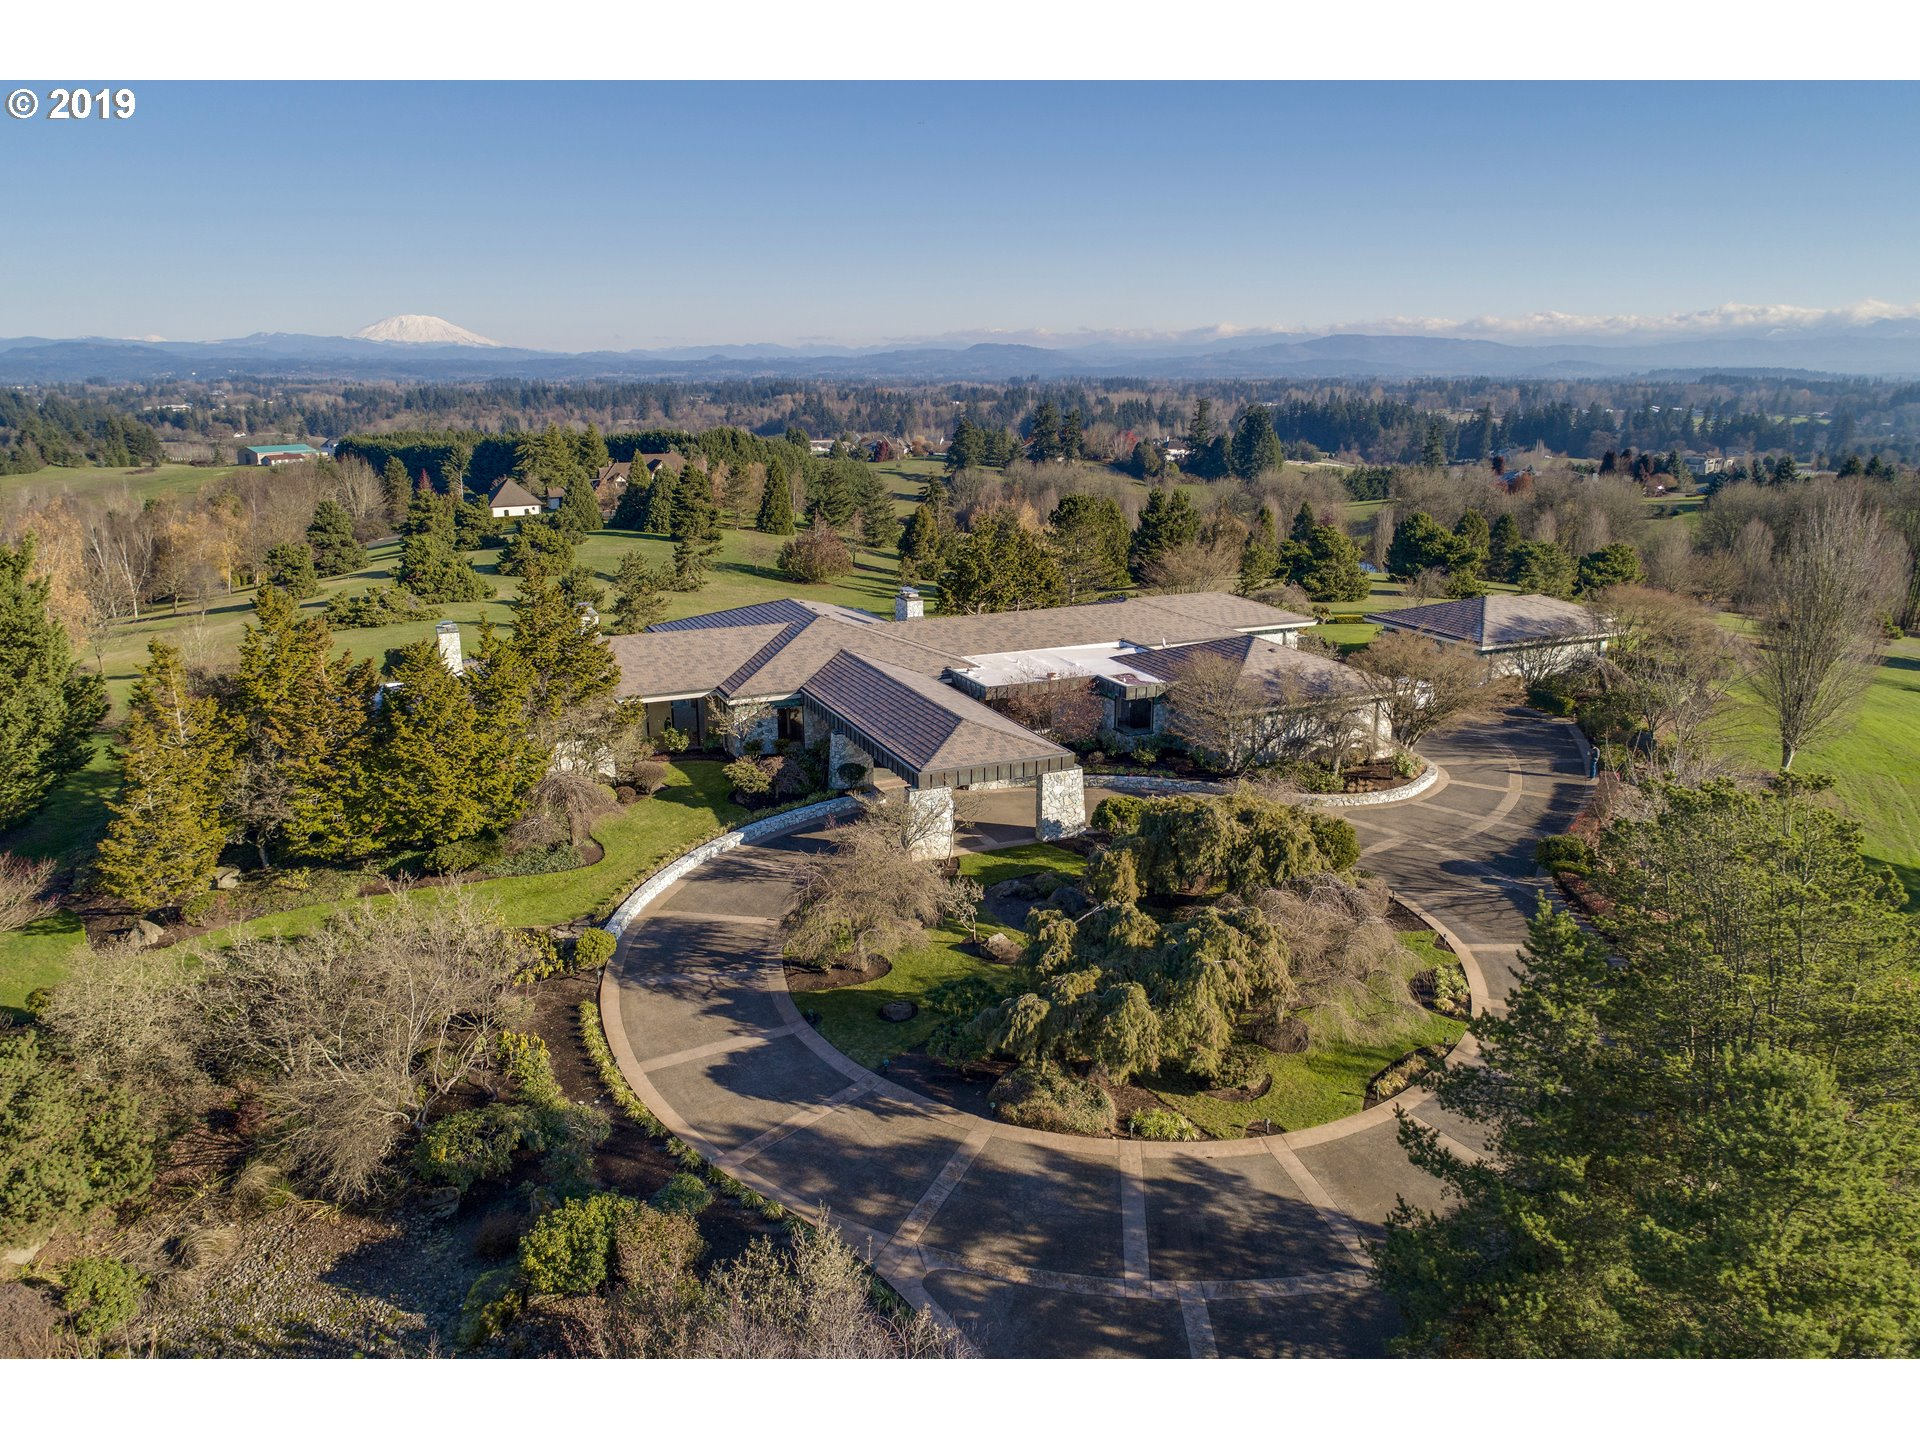 Contemporary 7,553sf Estate on 20 gated acres in Ridgefield w/3 mountain views. Single level, 3bed/4.5 bath, open plan w/floor-to-ceiling windows thru-out. Marble floors, light wood, copper & stone accents. Designed by award winning Steven Chase. Entertainers kitchen w/Butlers pantry connects to casual/formal dining rooms. Detached studio w/bath. Beautiful grounds with mature trees. Within 20/30 mins to PDX airport, Vancouver/Portland.